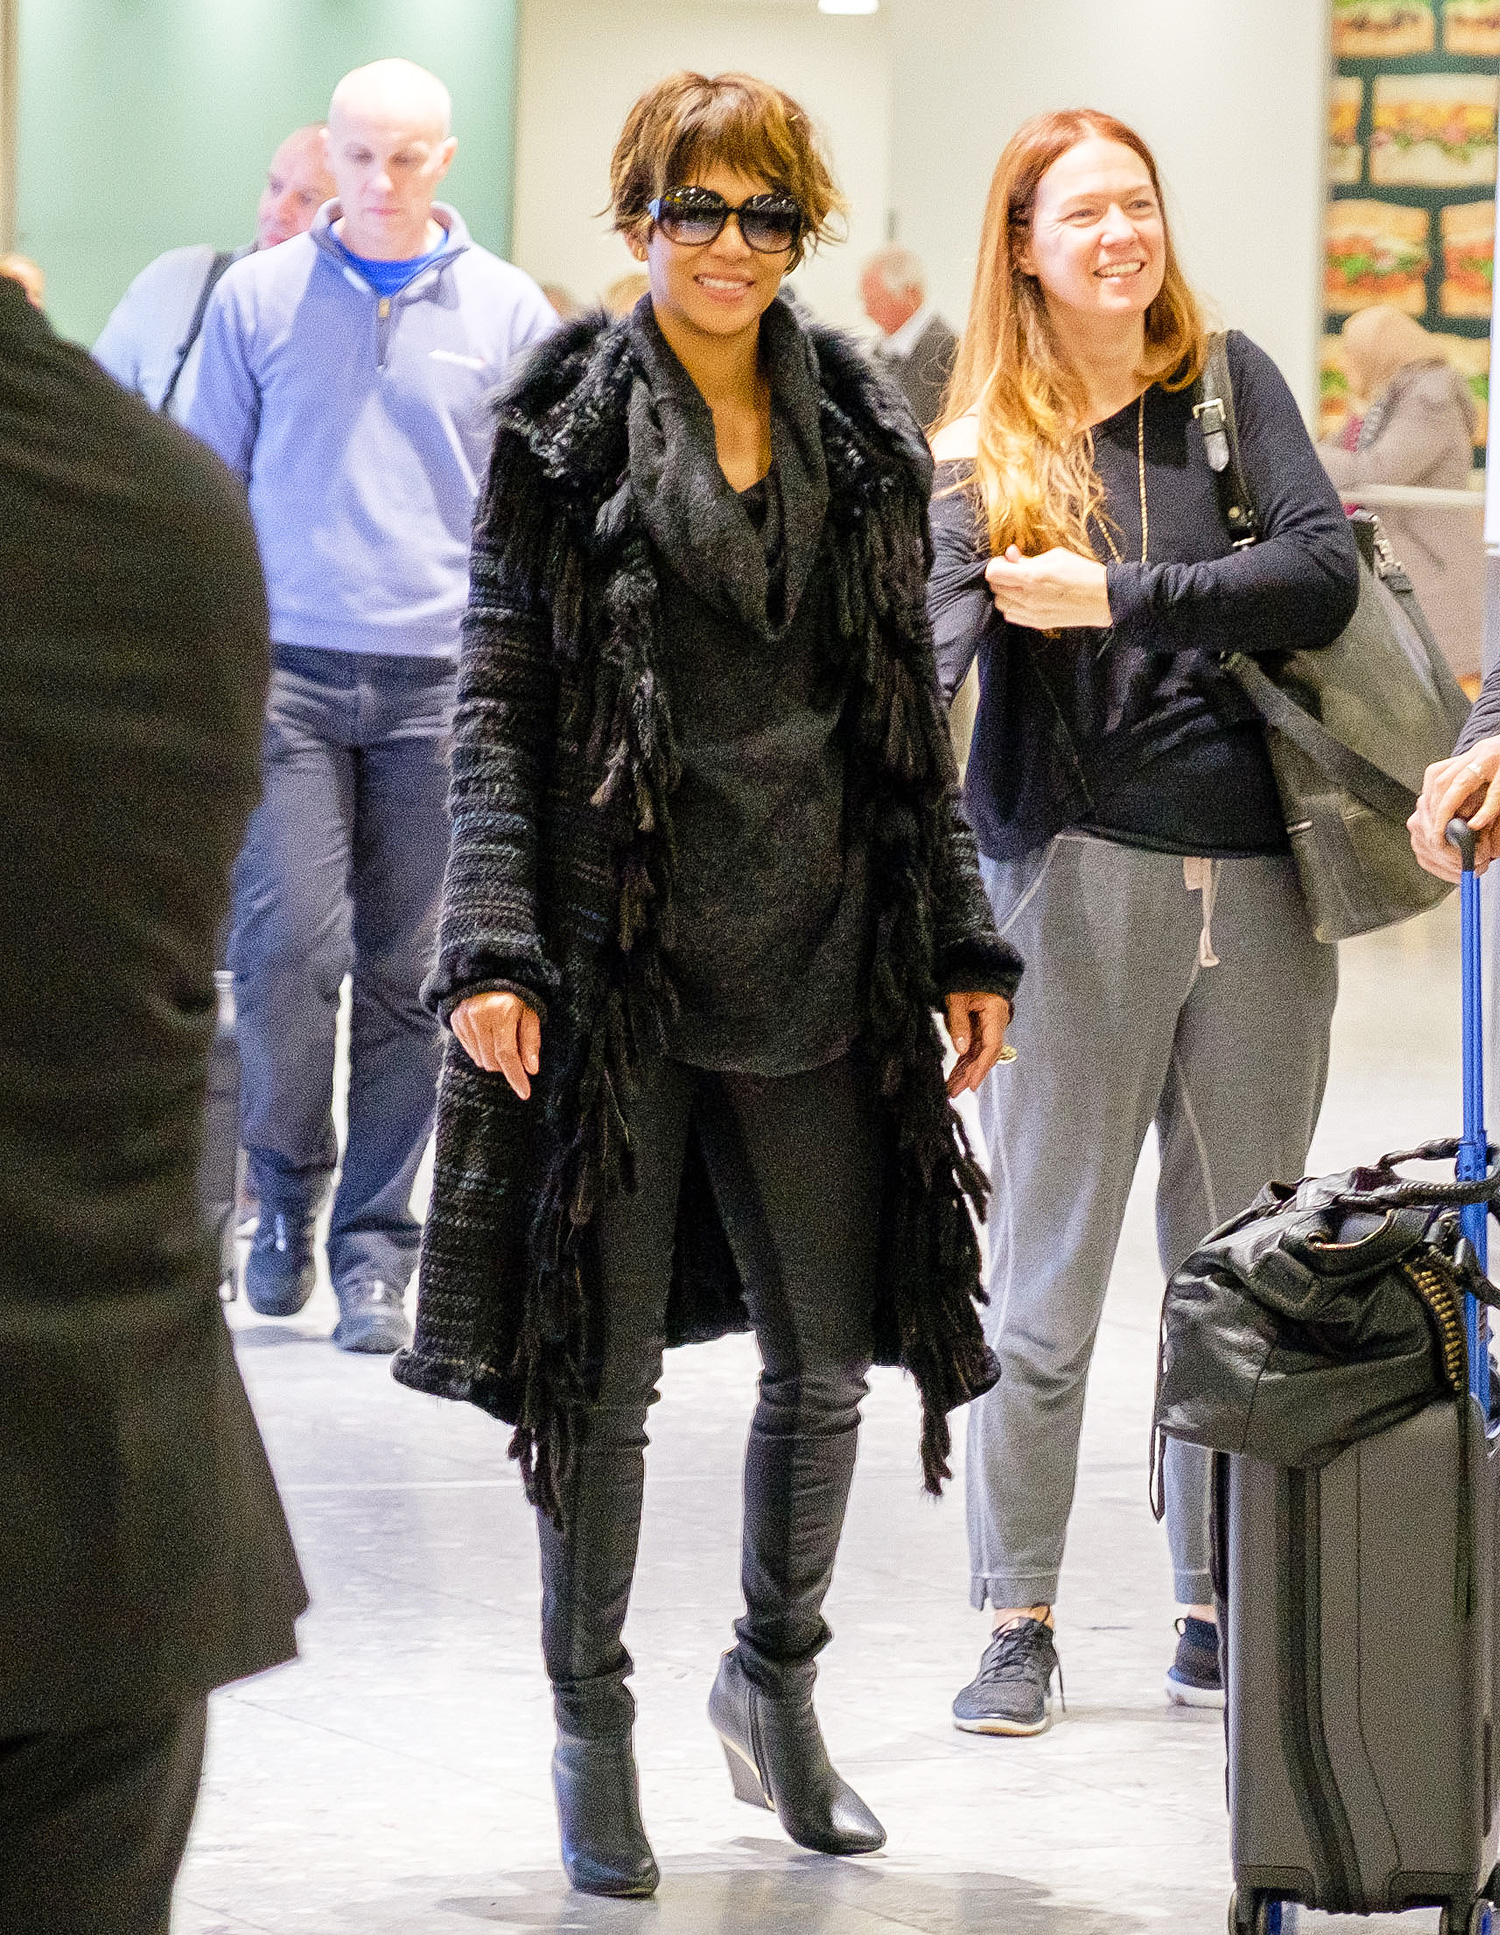 EXCLUSIVE: Halle Berry arrives at Heathrow Airport